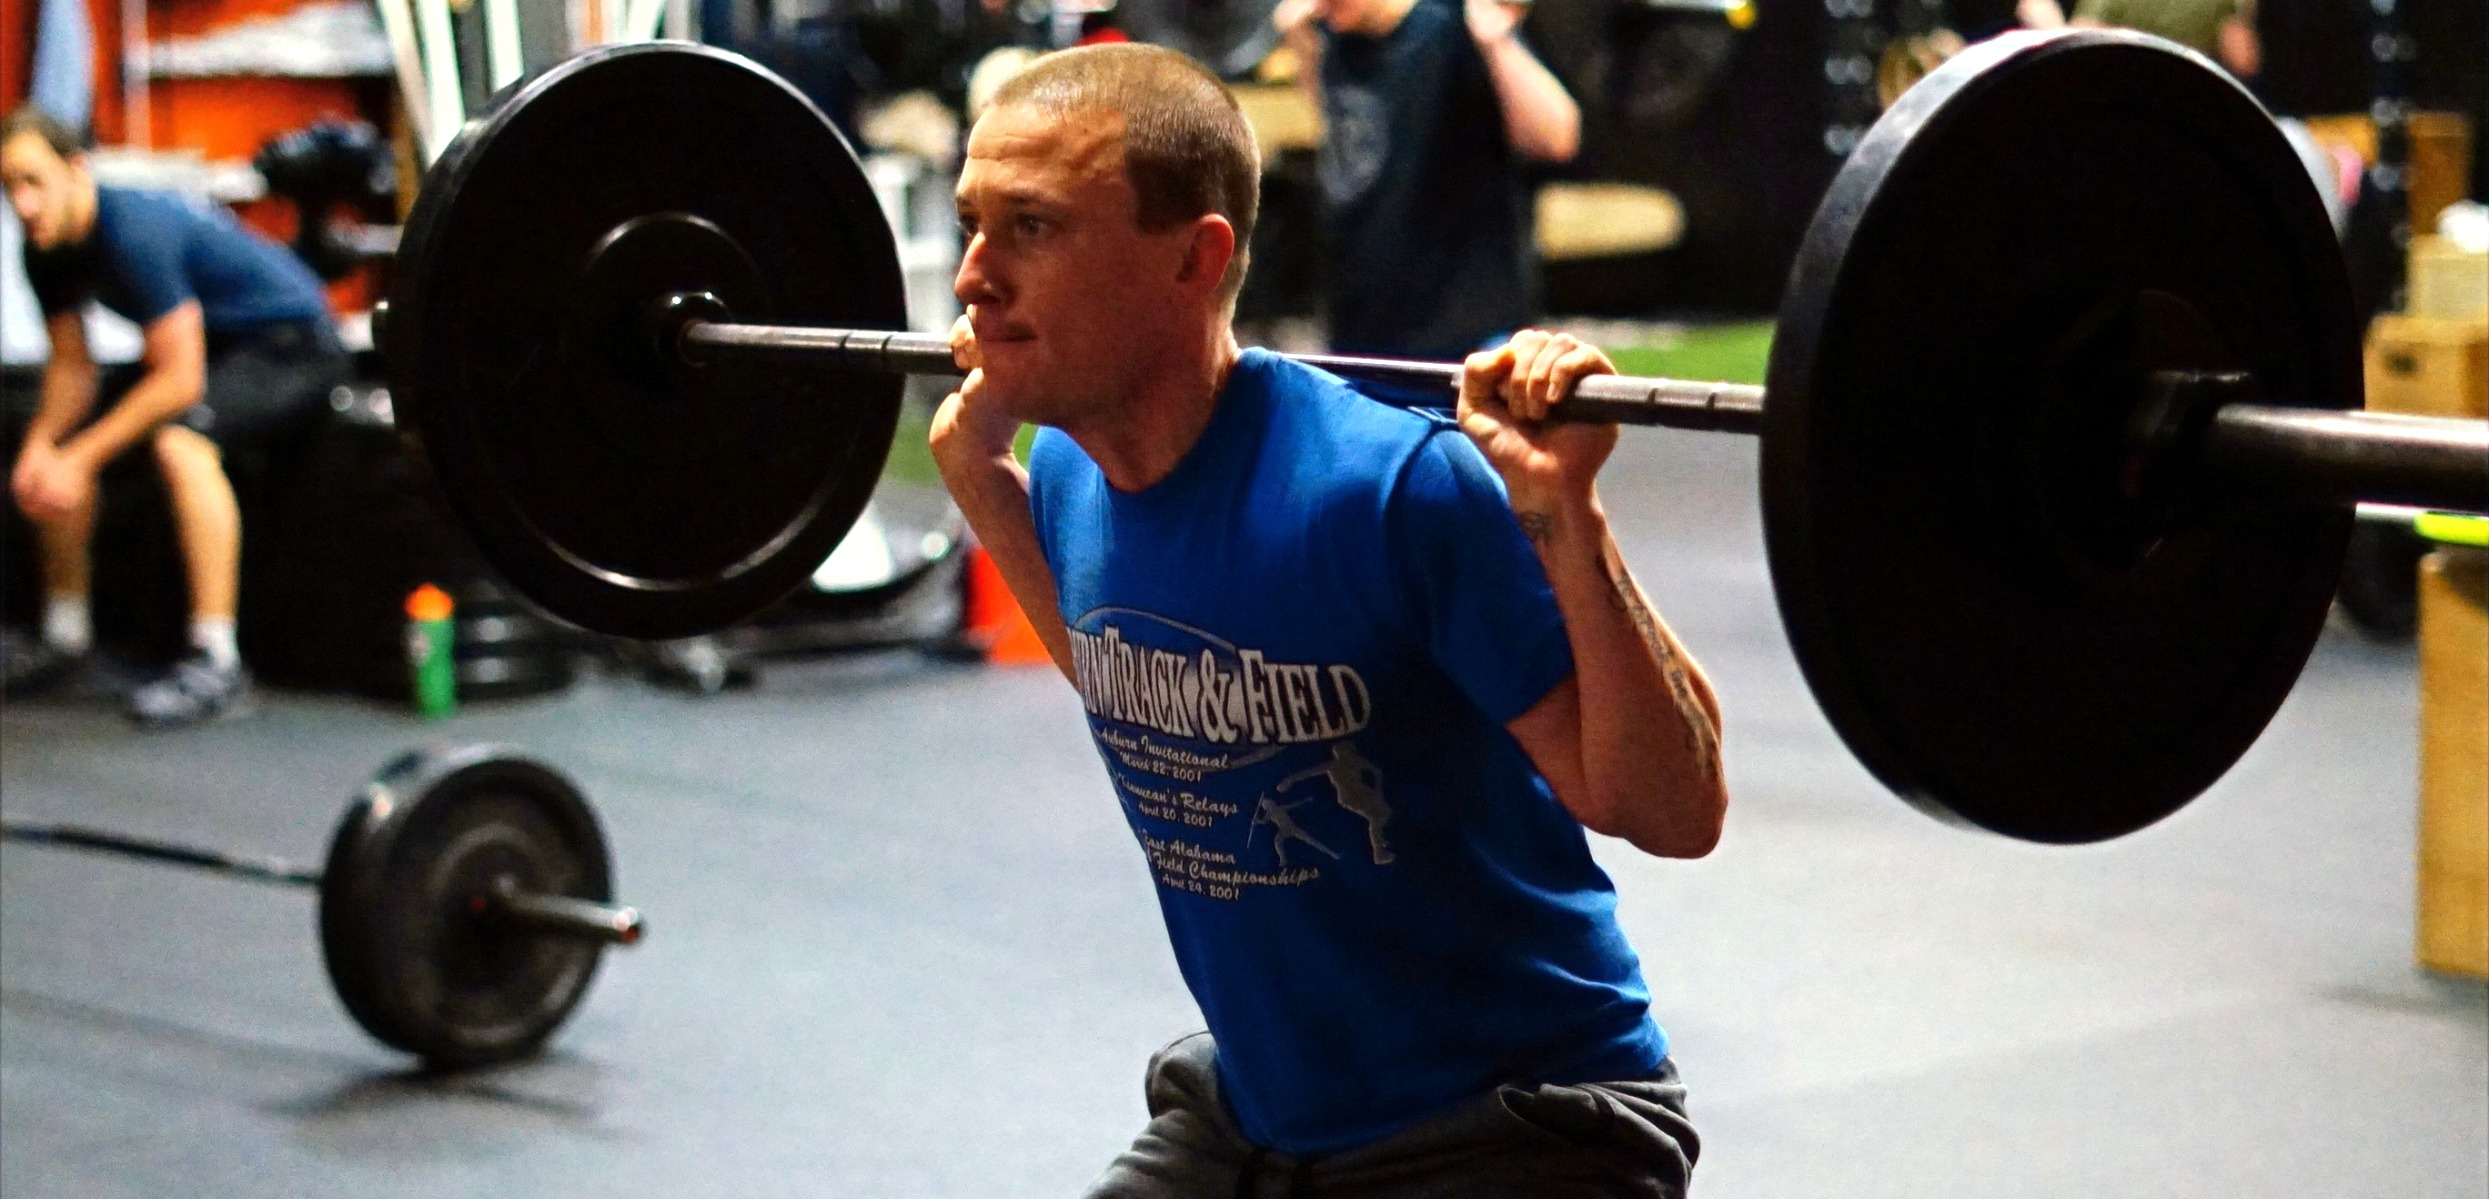 find gym classes near me bellevue - Athlete of the Month: Chris George